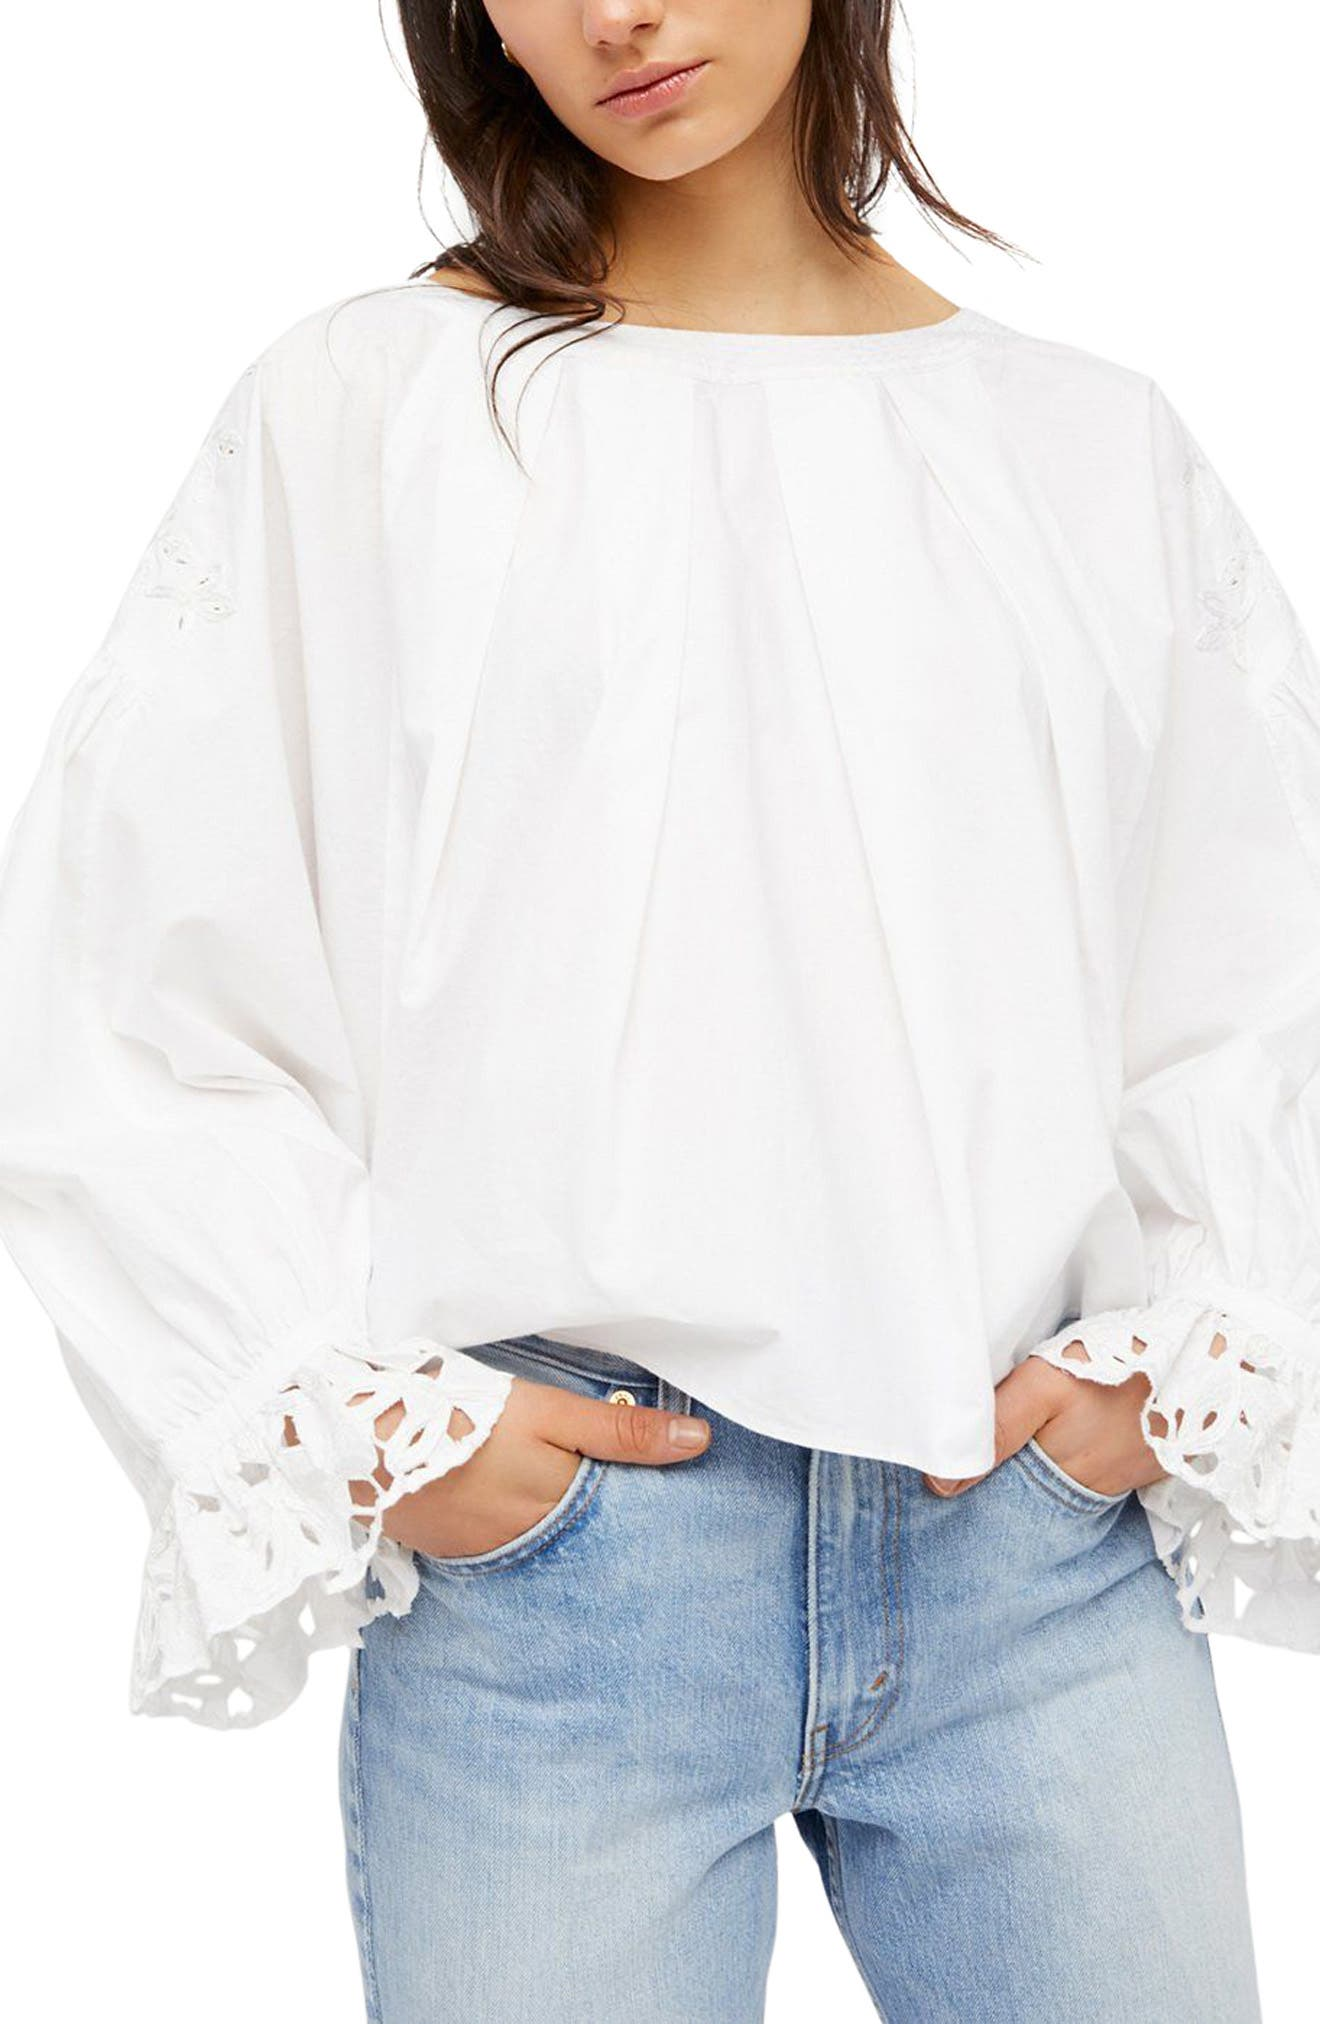 Wishing Well Blouse,                         Main,                         color, White